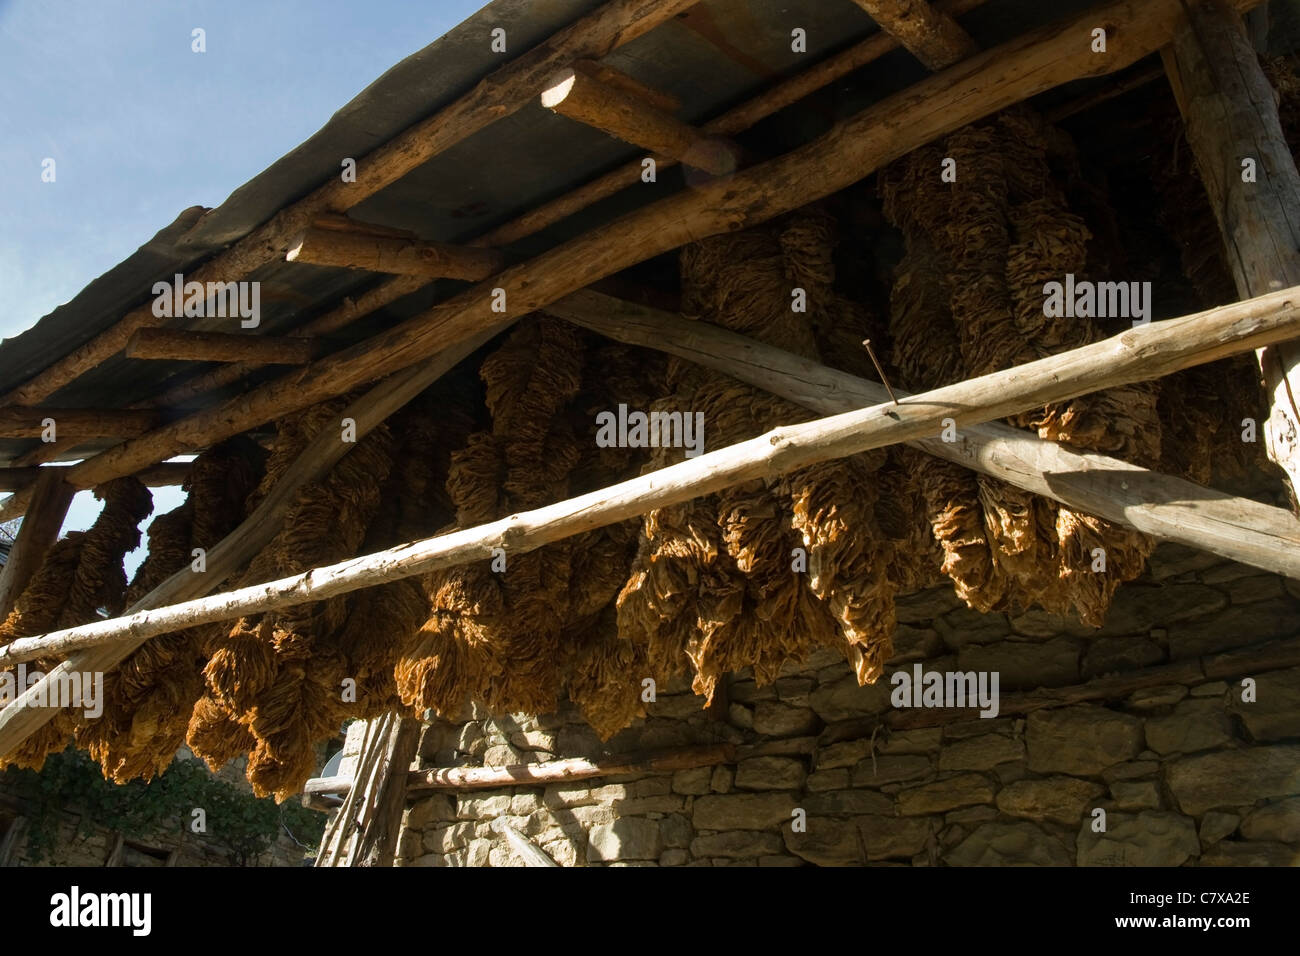 An old house in village of Ilinitza with tobacco leaves under the roof, Kurdjali region, South Bulgaria, Eastern - Stock Image